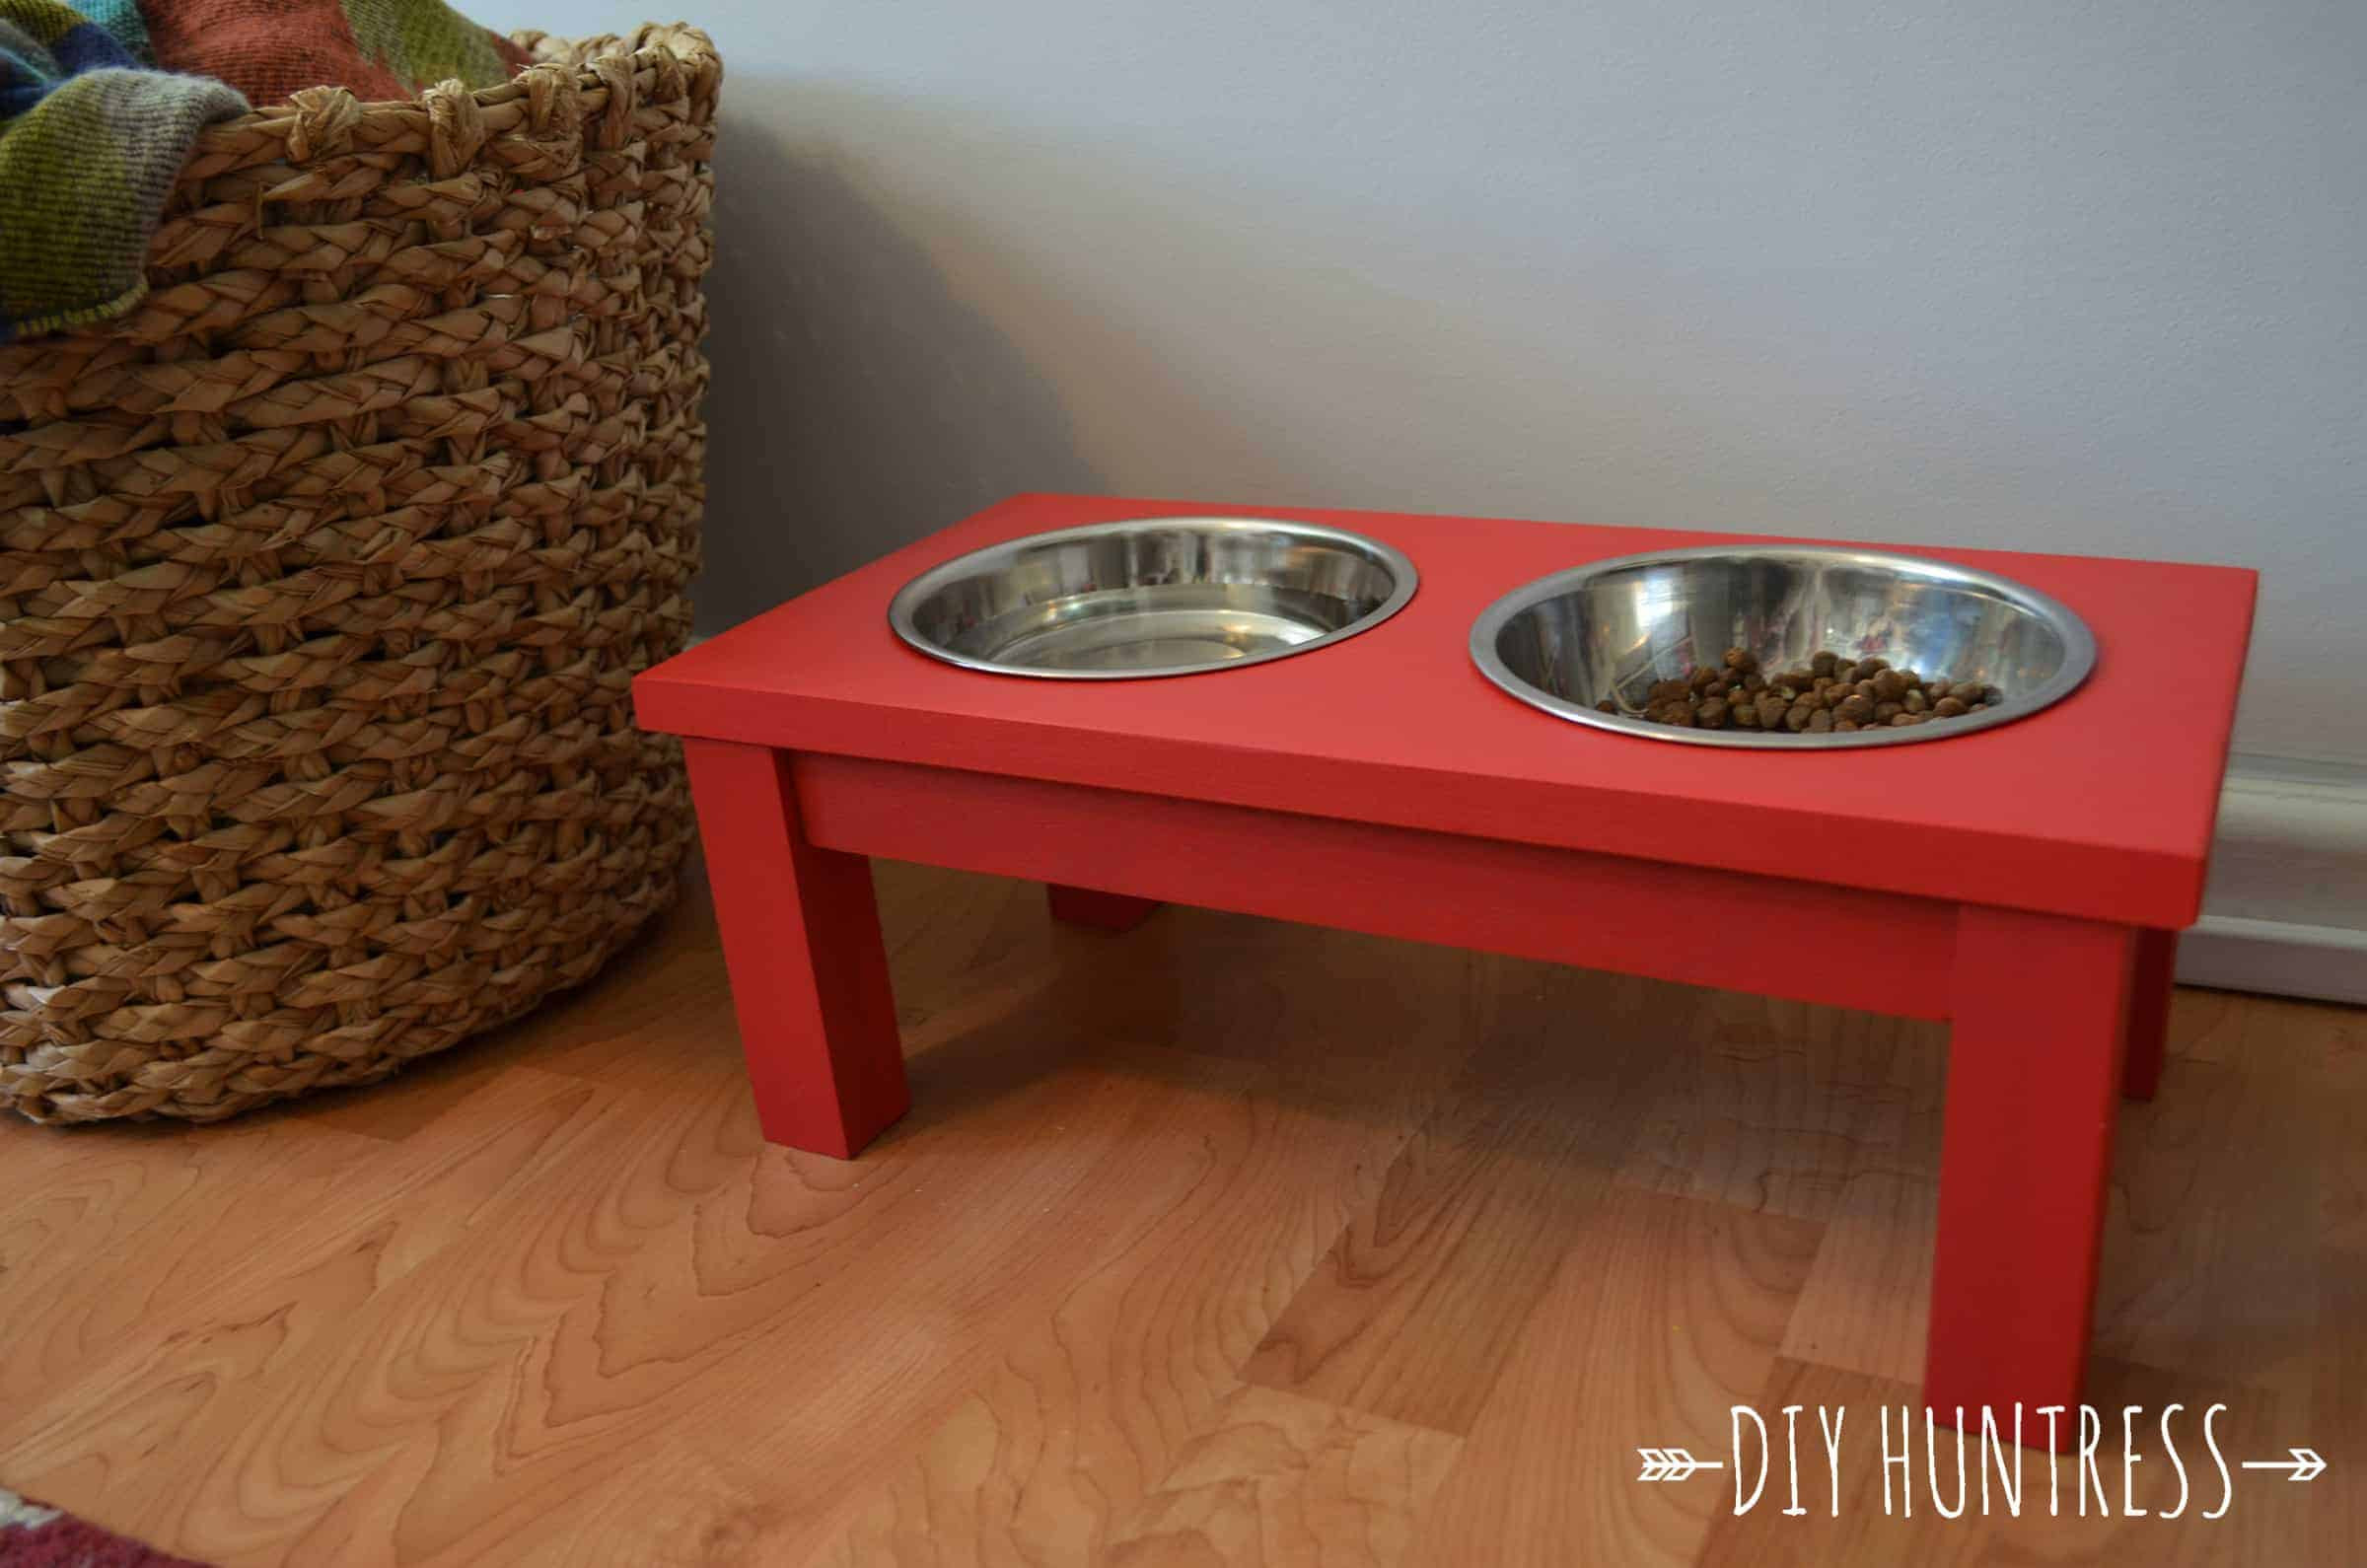 Best ideas about Dog Bowl Stand DIY . Save or Pin DIY Dog Bowl Stand DIY Huntress Now.